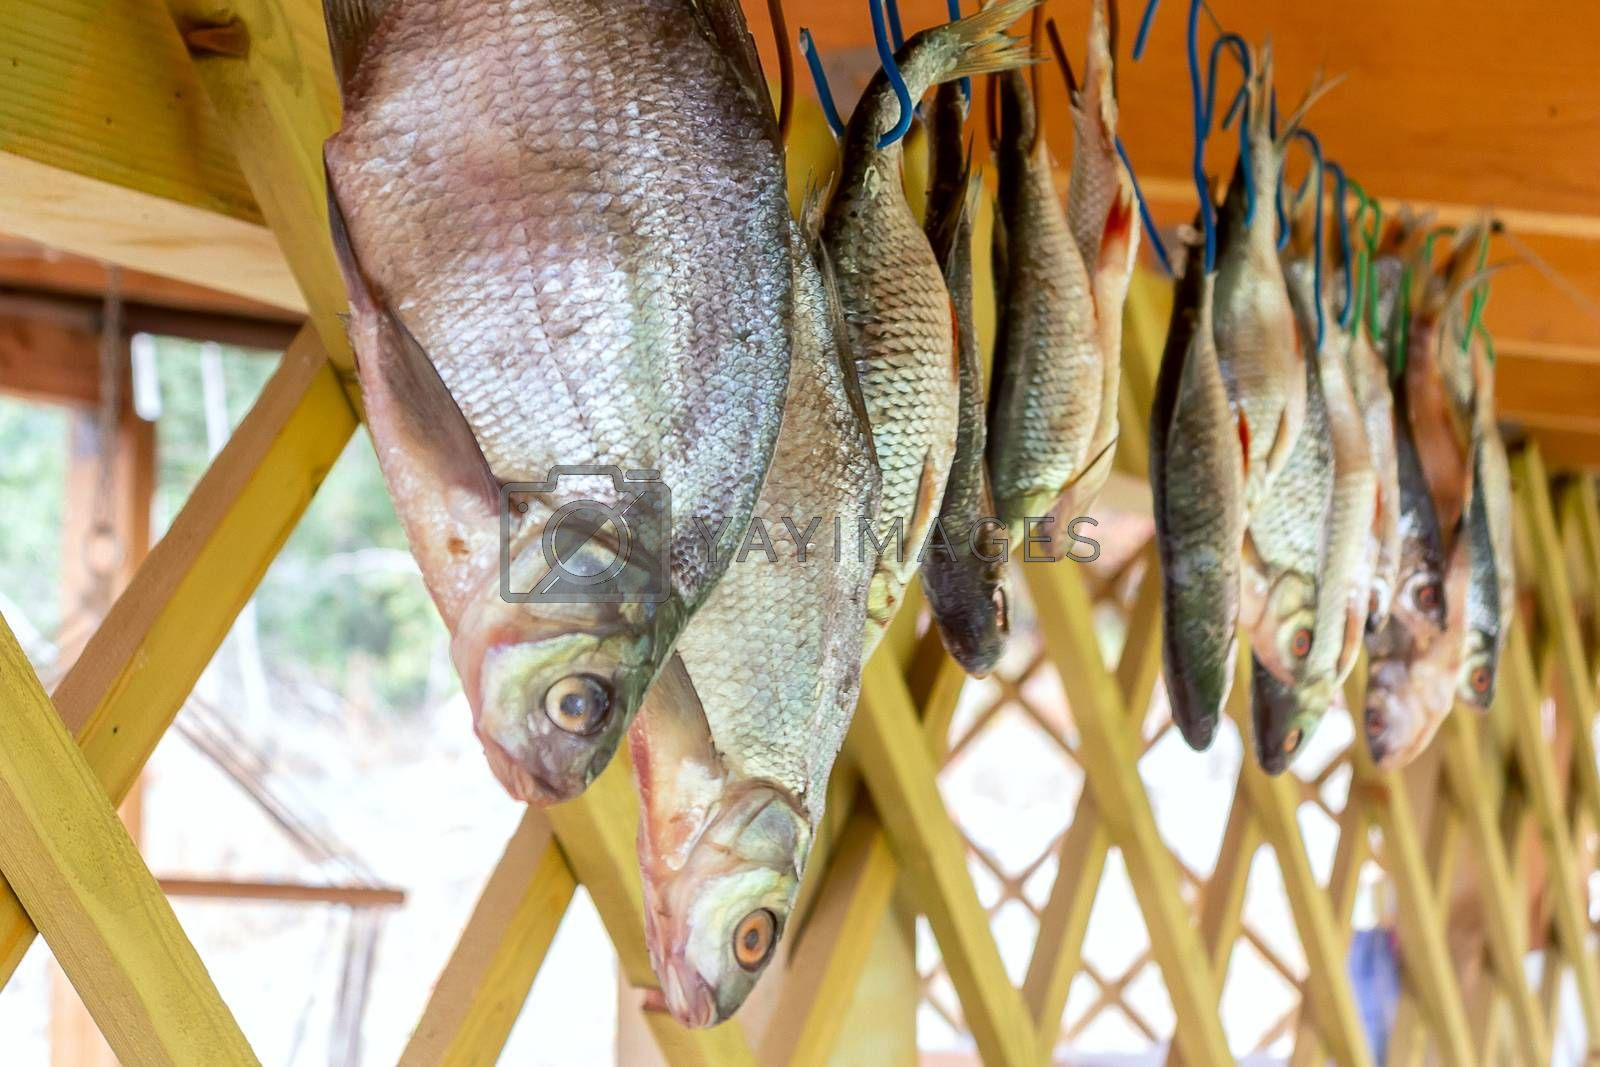 River fish hanging upside down dried on a rope by galsand